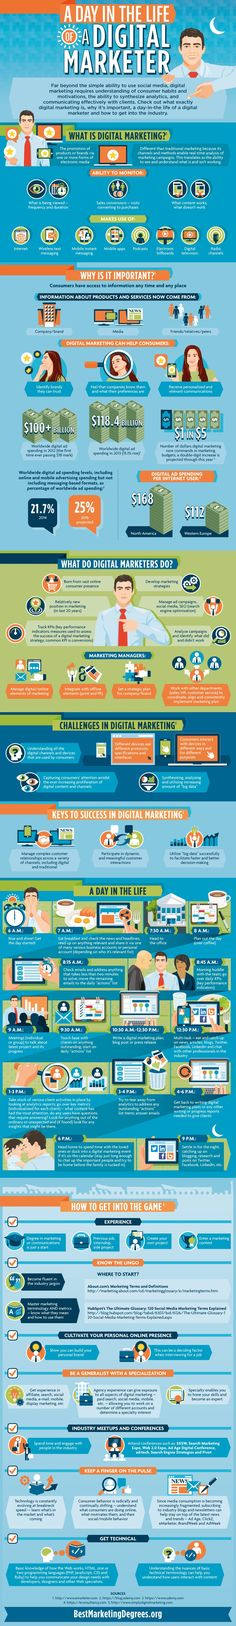 Un día en la vida de un profesional del marketing digital #infografia #infographic #marketing